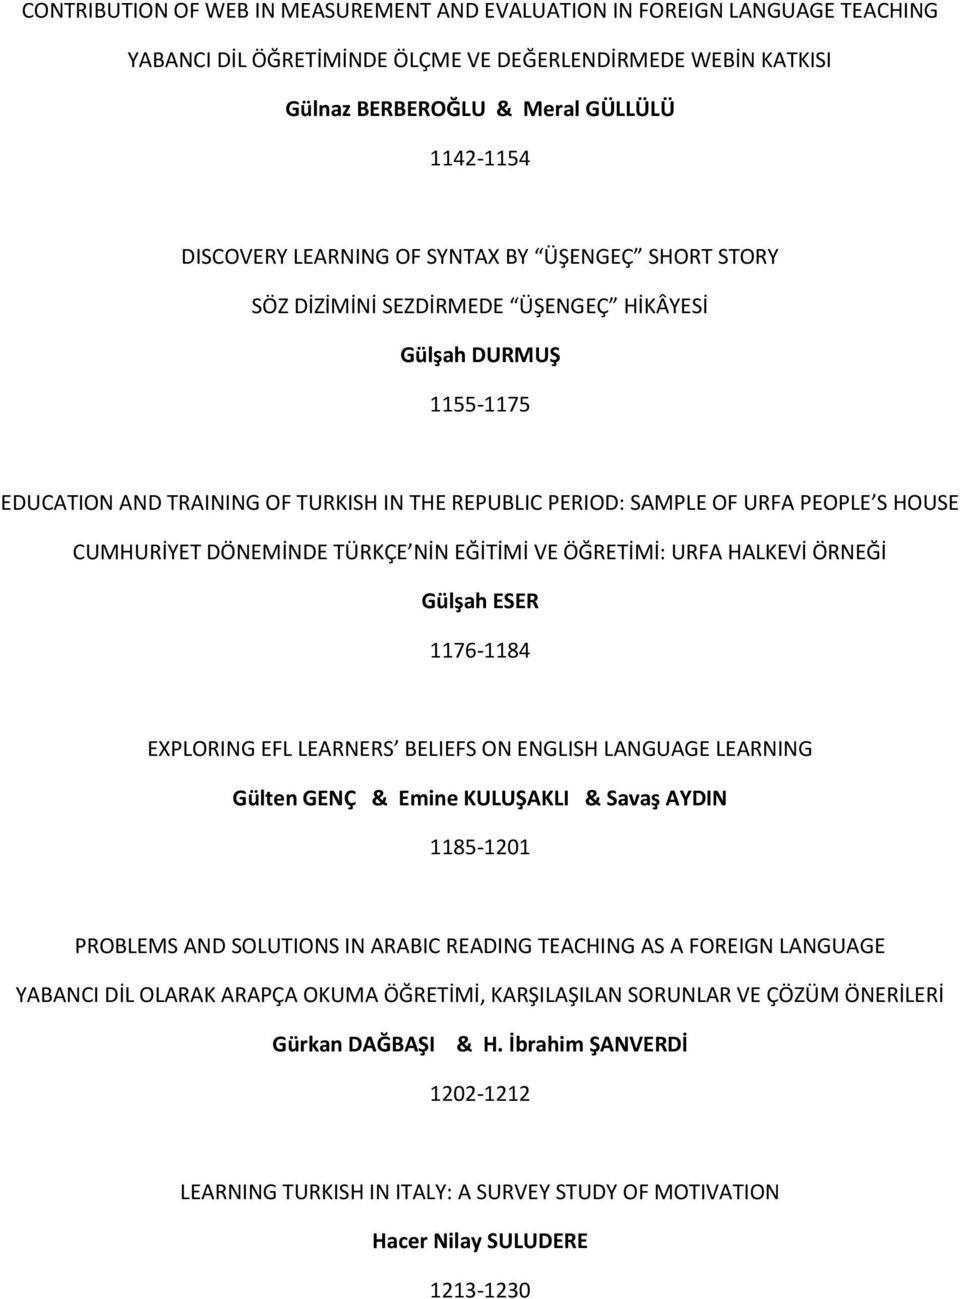 CUMHURİYET DÖNEMİNDE TÜRKÇE NİN EĞİTİMİ VE ÖĞRETİMİ: URFA HALKEVİ ÖRNEĞİ Gülşah ESER 1176-1184 EXPLORING EFL LEARNERS BELIEFS ON ENGLISH LANGUAGE LEARNING Gülten GENÇ & Emine KULUŞAKLI & Savaş AYDIN